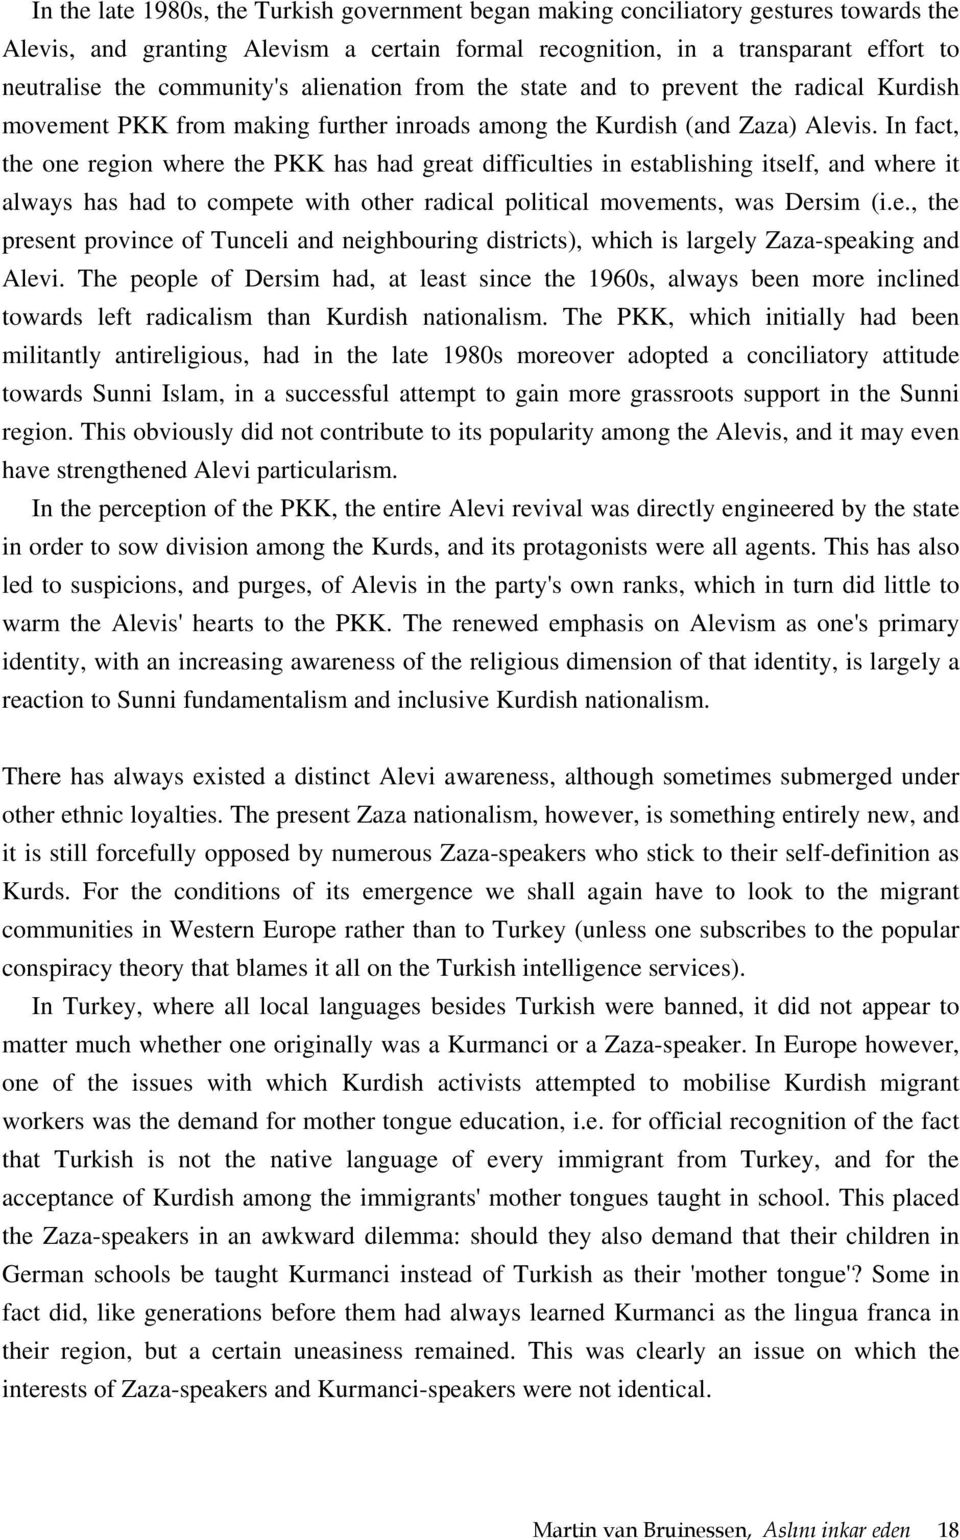 In fact, the one region where the PKK has had great difficulties in establishing itself, and where it always has had to compete with other radical political movements, was Dersim (i.e., the present province of Tunceli and neighbouring districts), which is largely Zaza-speaking and Alevi.